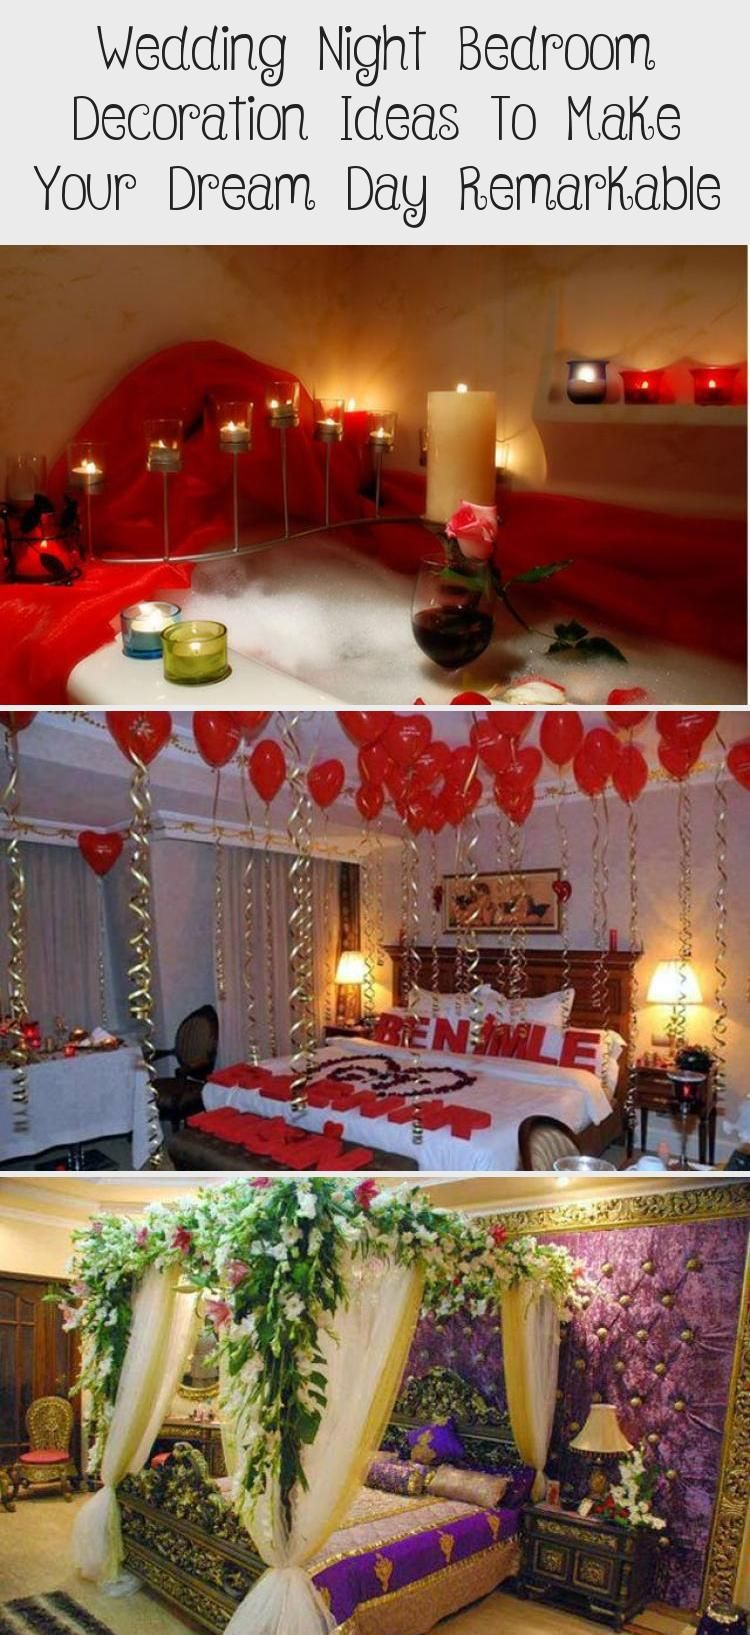 Wedding Night Bedroom Decoration Ideas To Make Your Dream Day Remarkable Valentines In 2020 Bedroom Night Wedding Night Bedroom Decor